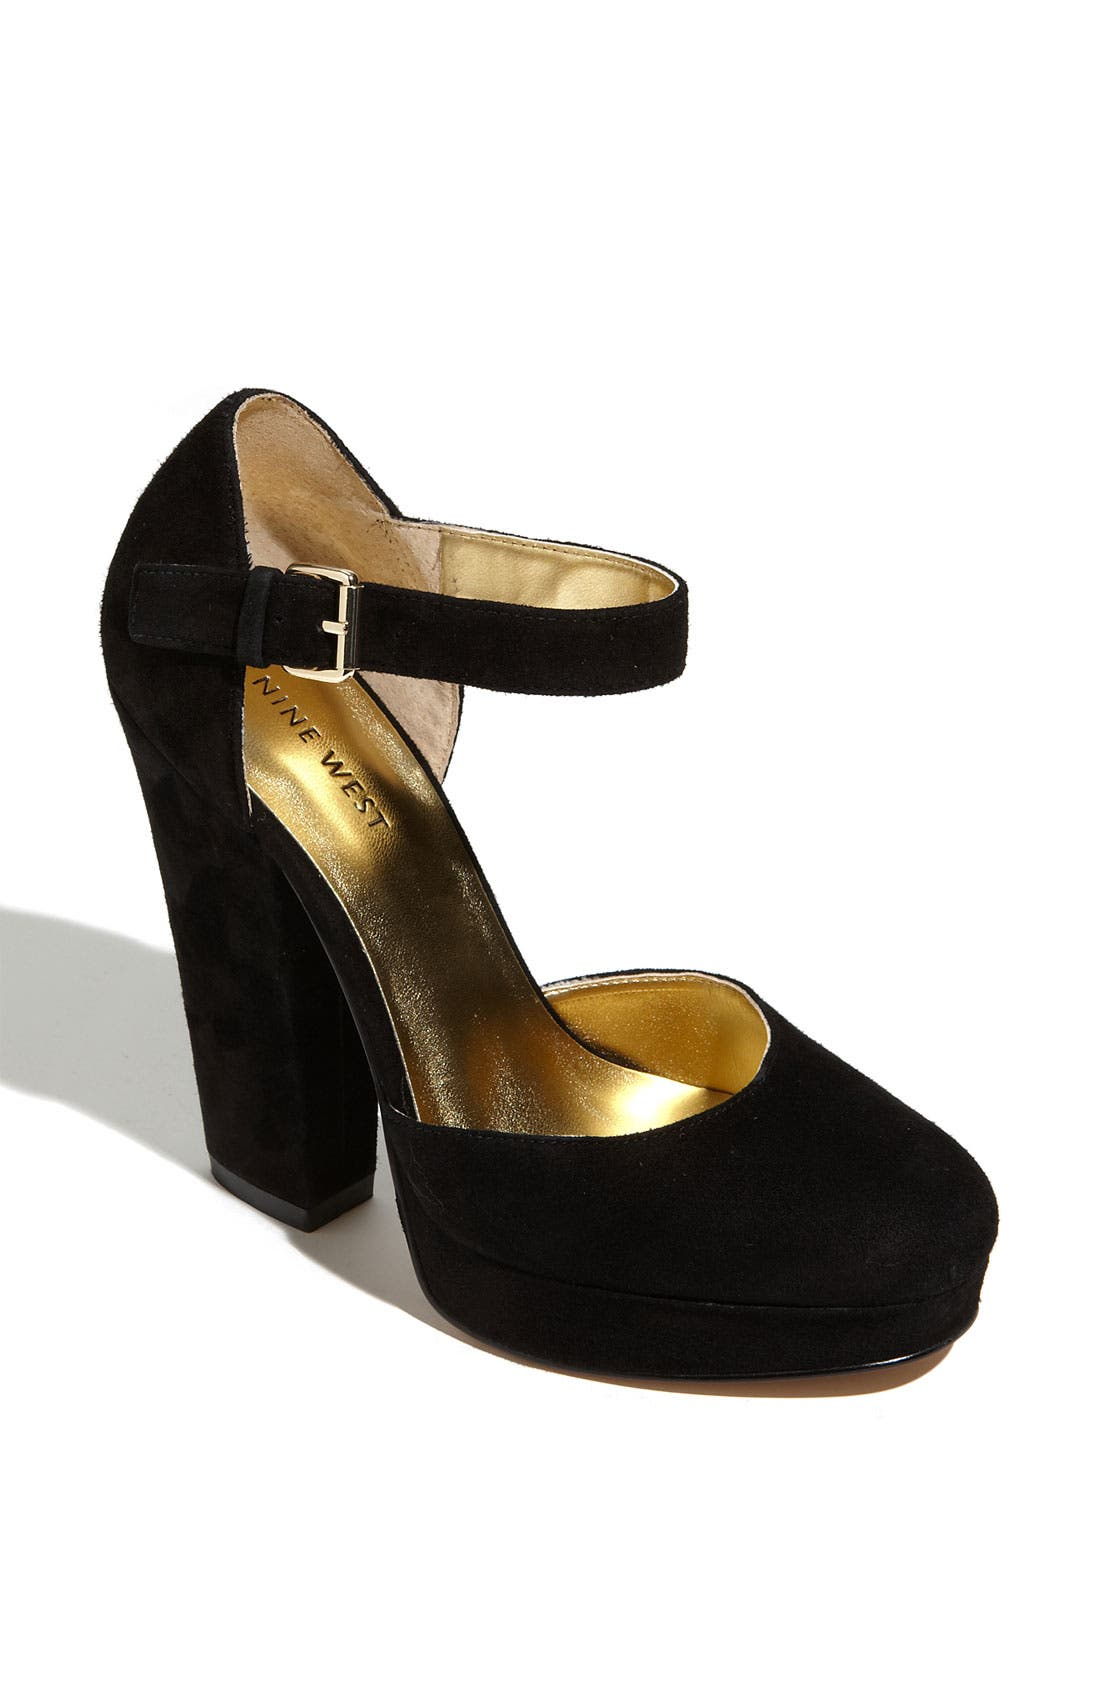 Main Image - Nine West 'Aroundtown' Mary Jane Pump